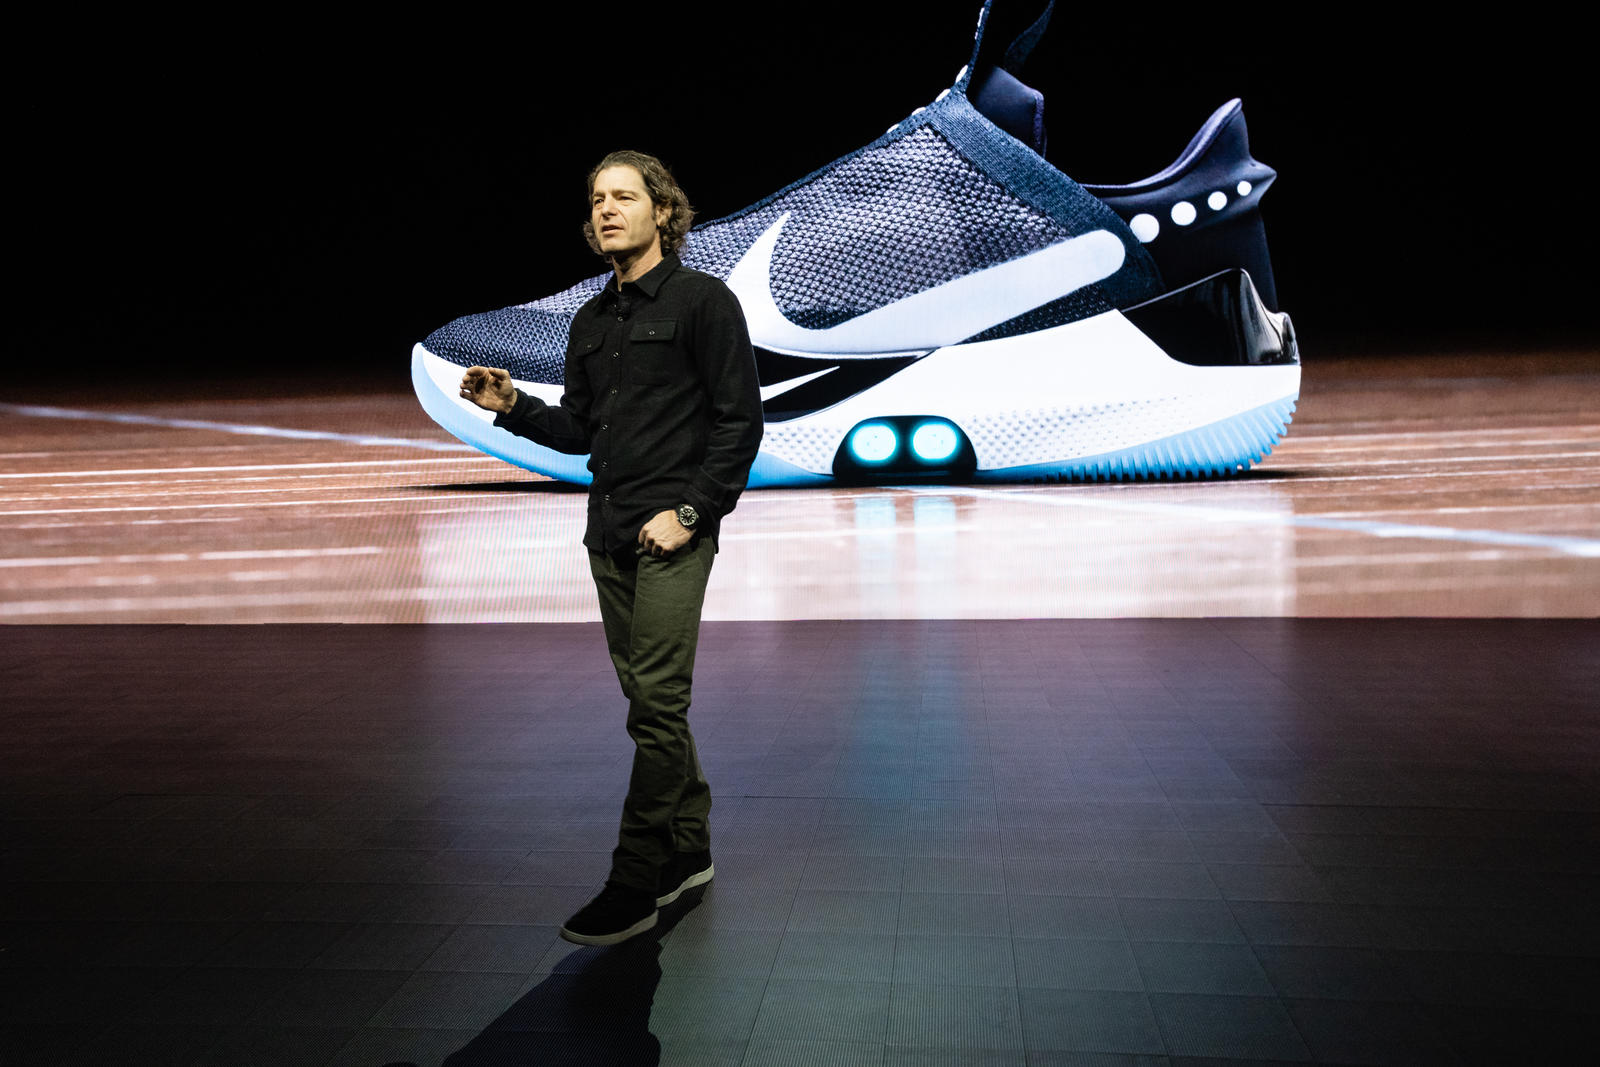 f913af2252 Nike Rolls Out Self-Lacing Shoe Which Can Be Controlled With An App